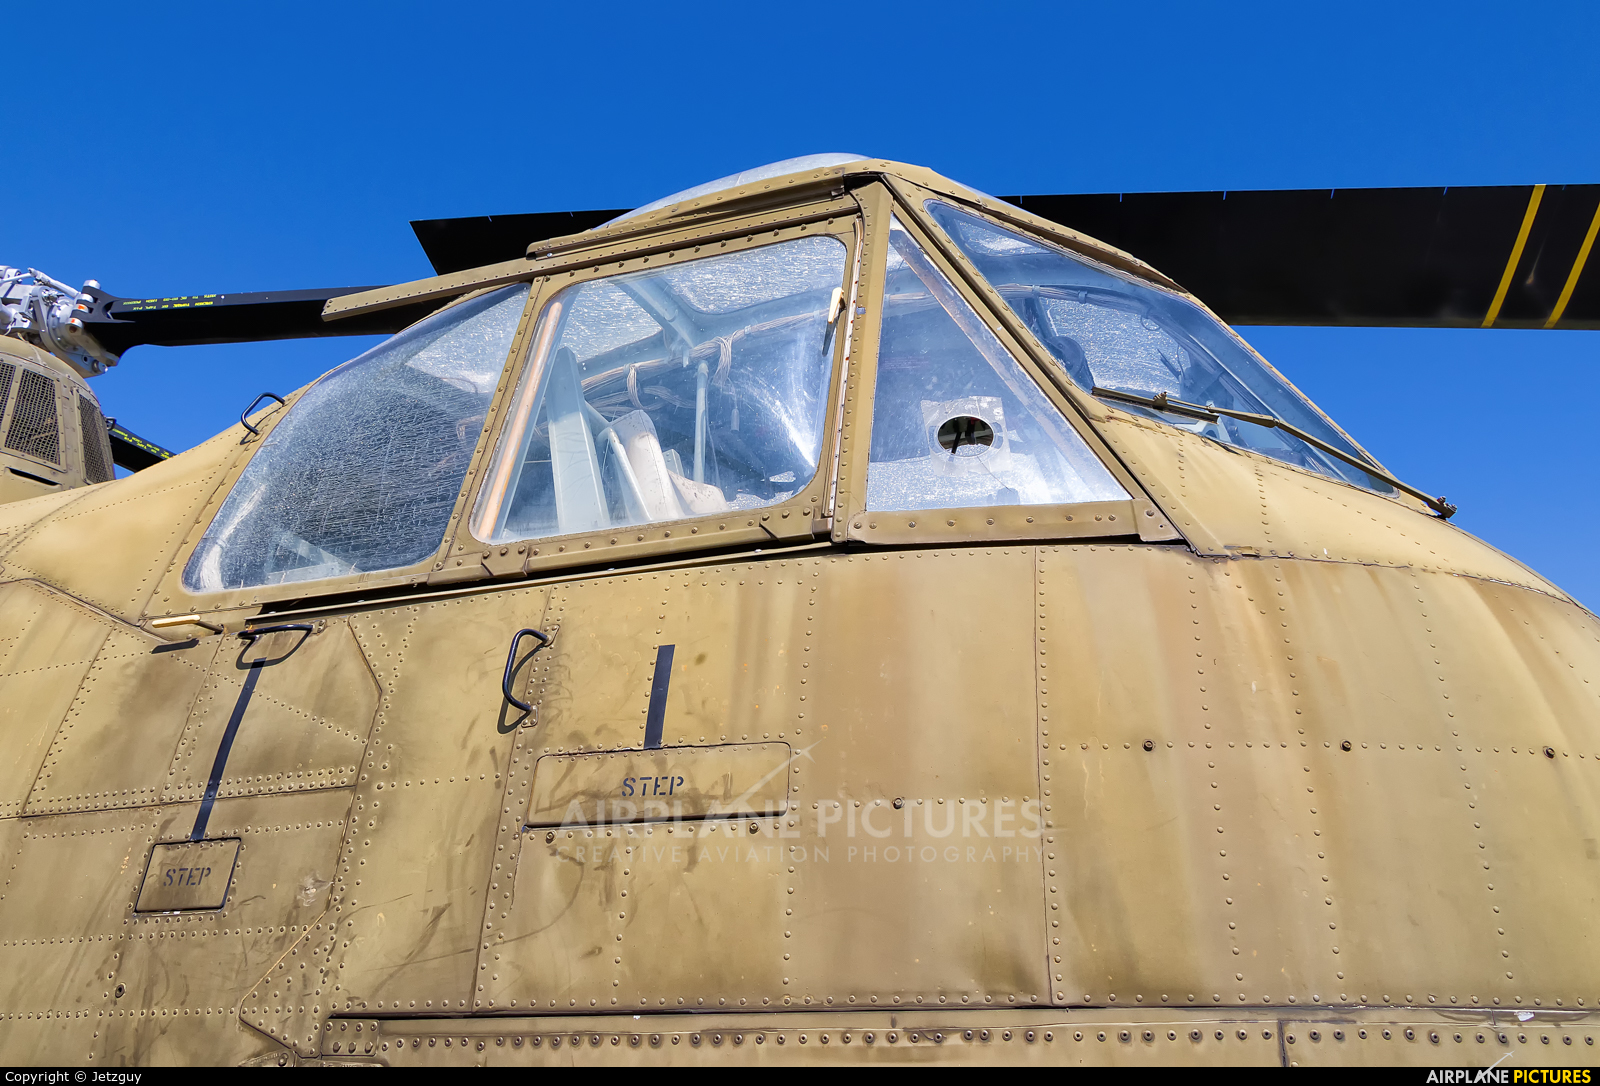 USA - Army 58-0999 aircraft at McMinnville - Evergreen Aviation & Space Museum